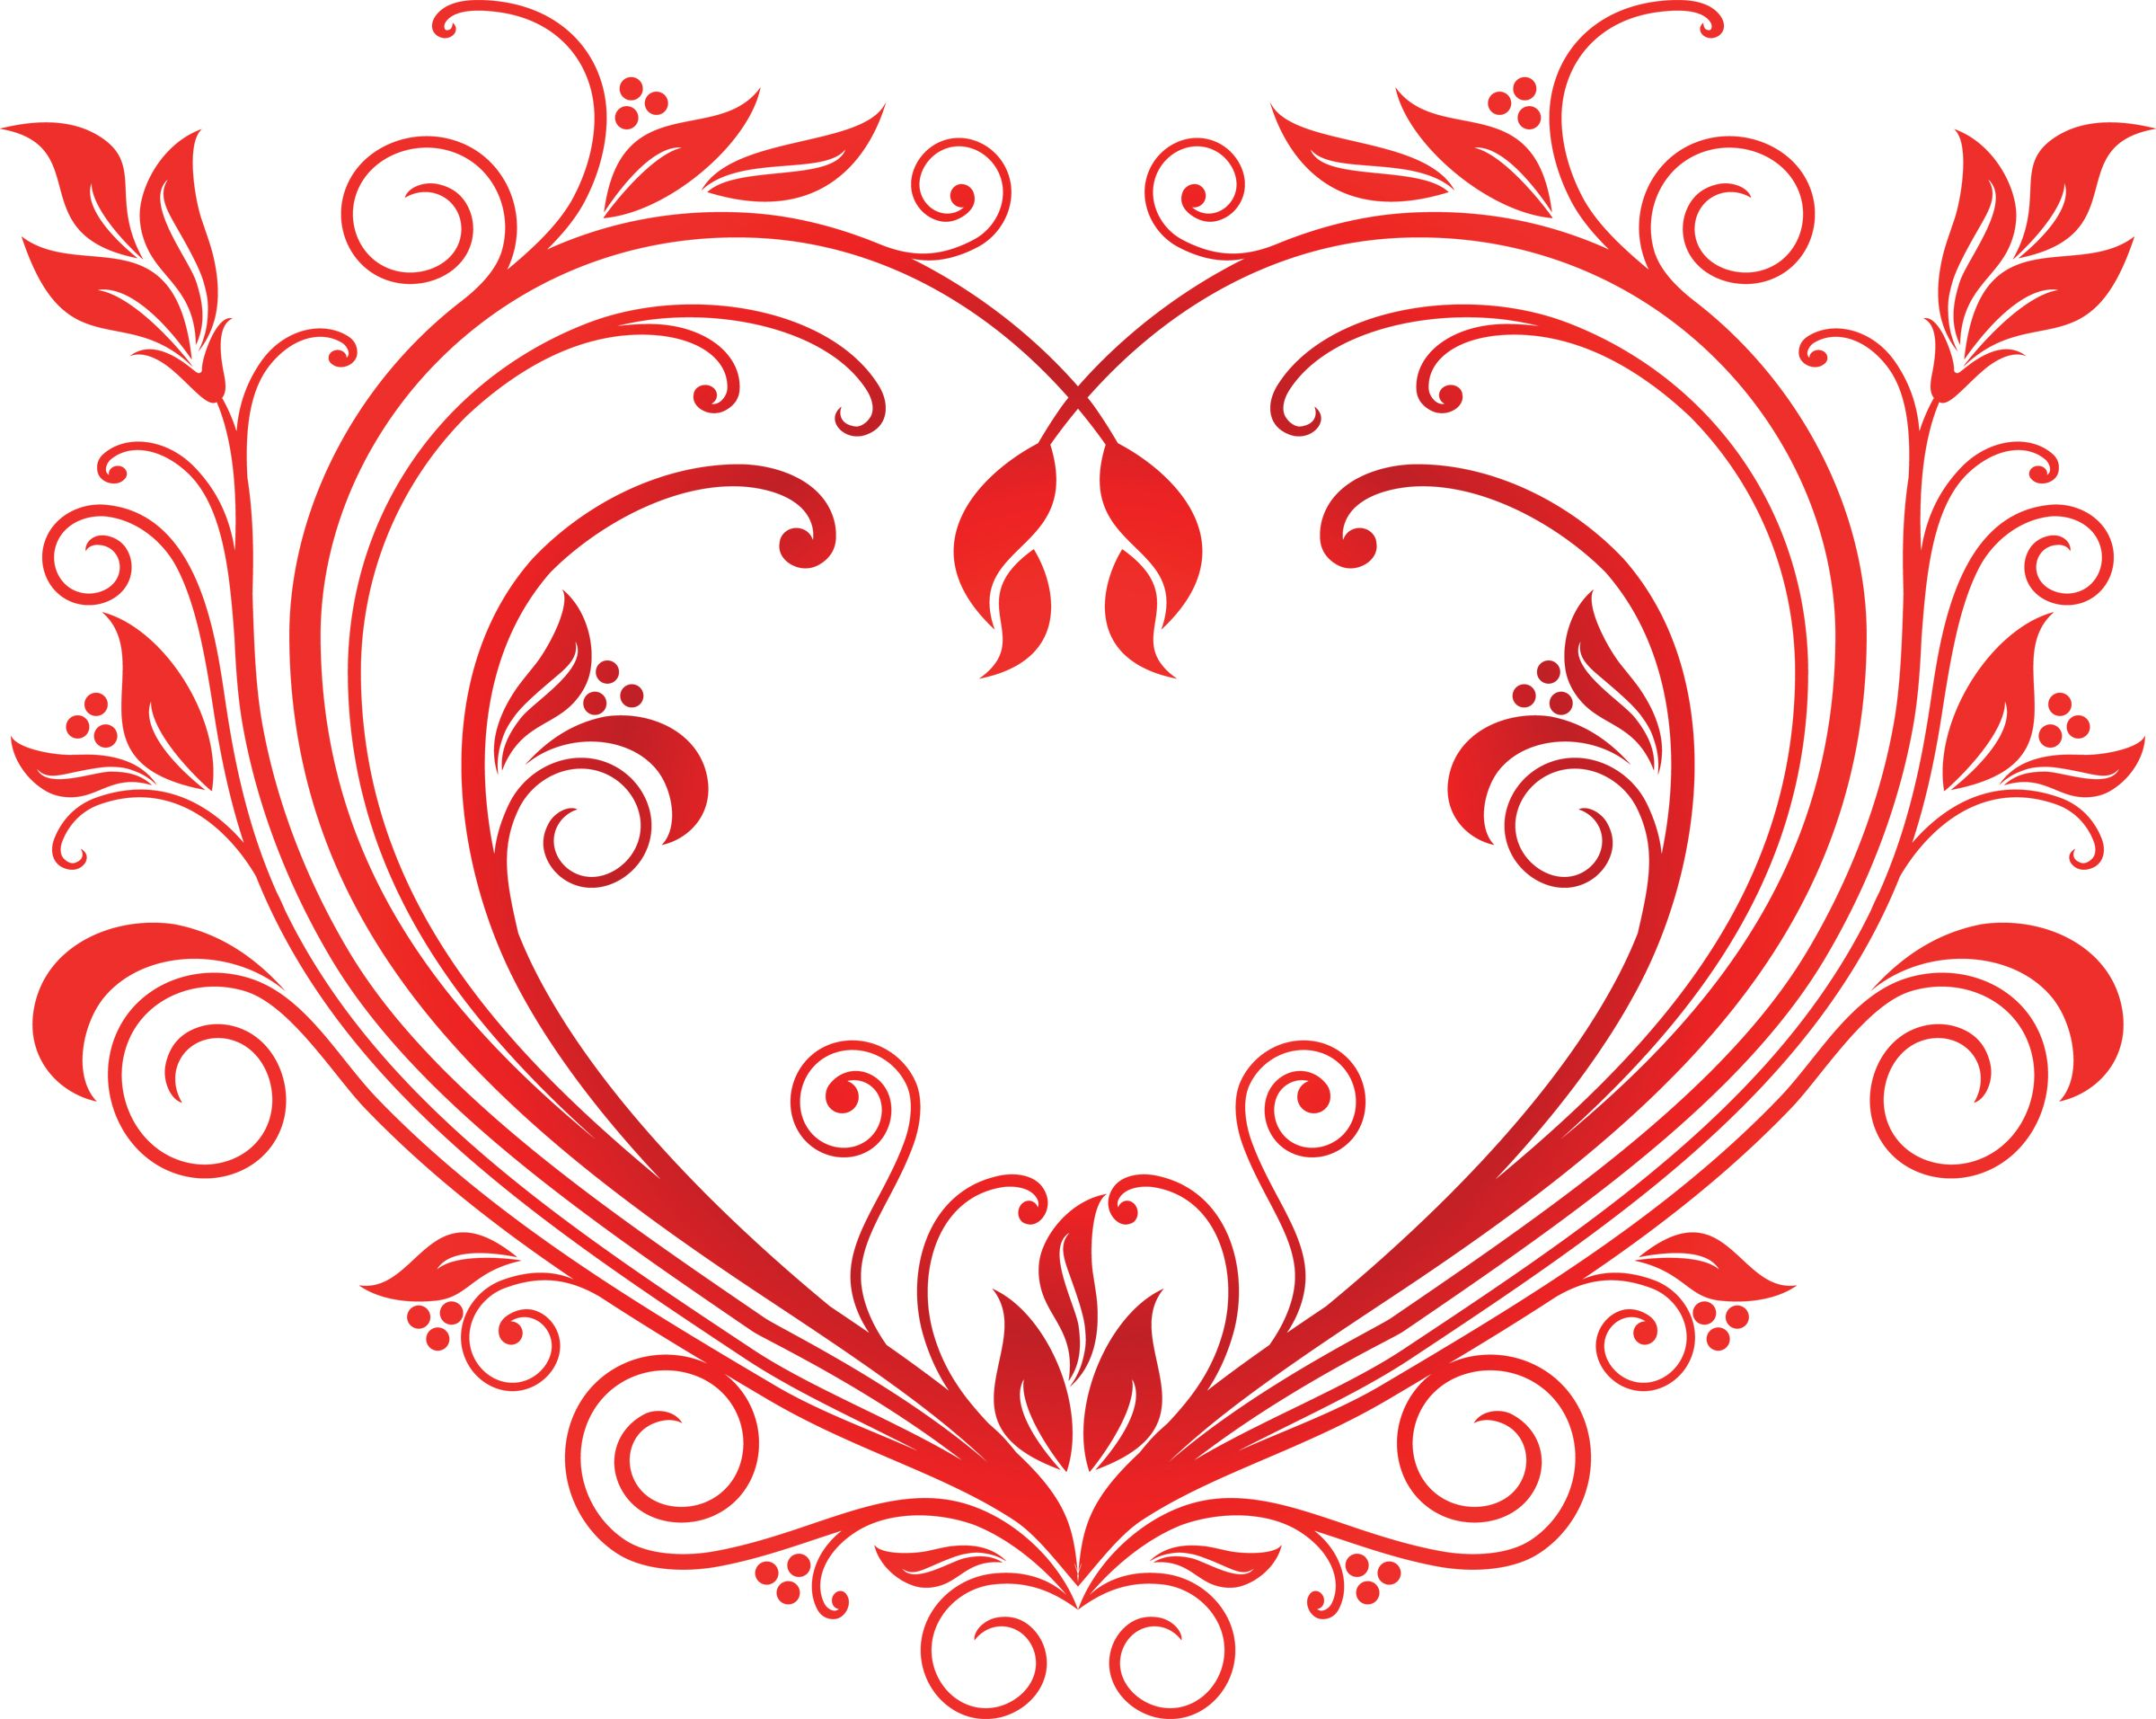 buy valentine heart by seamartini on graphicriver red valentine heart in floral style for design editable you can use any vector program and jpeg can